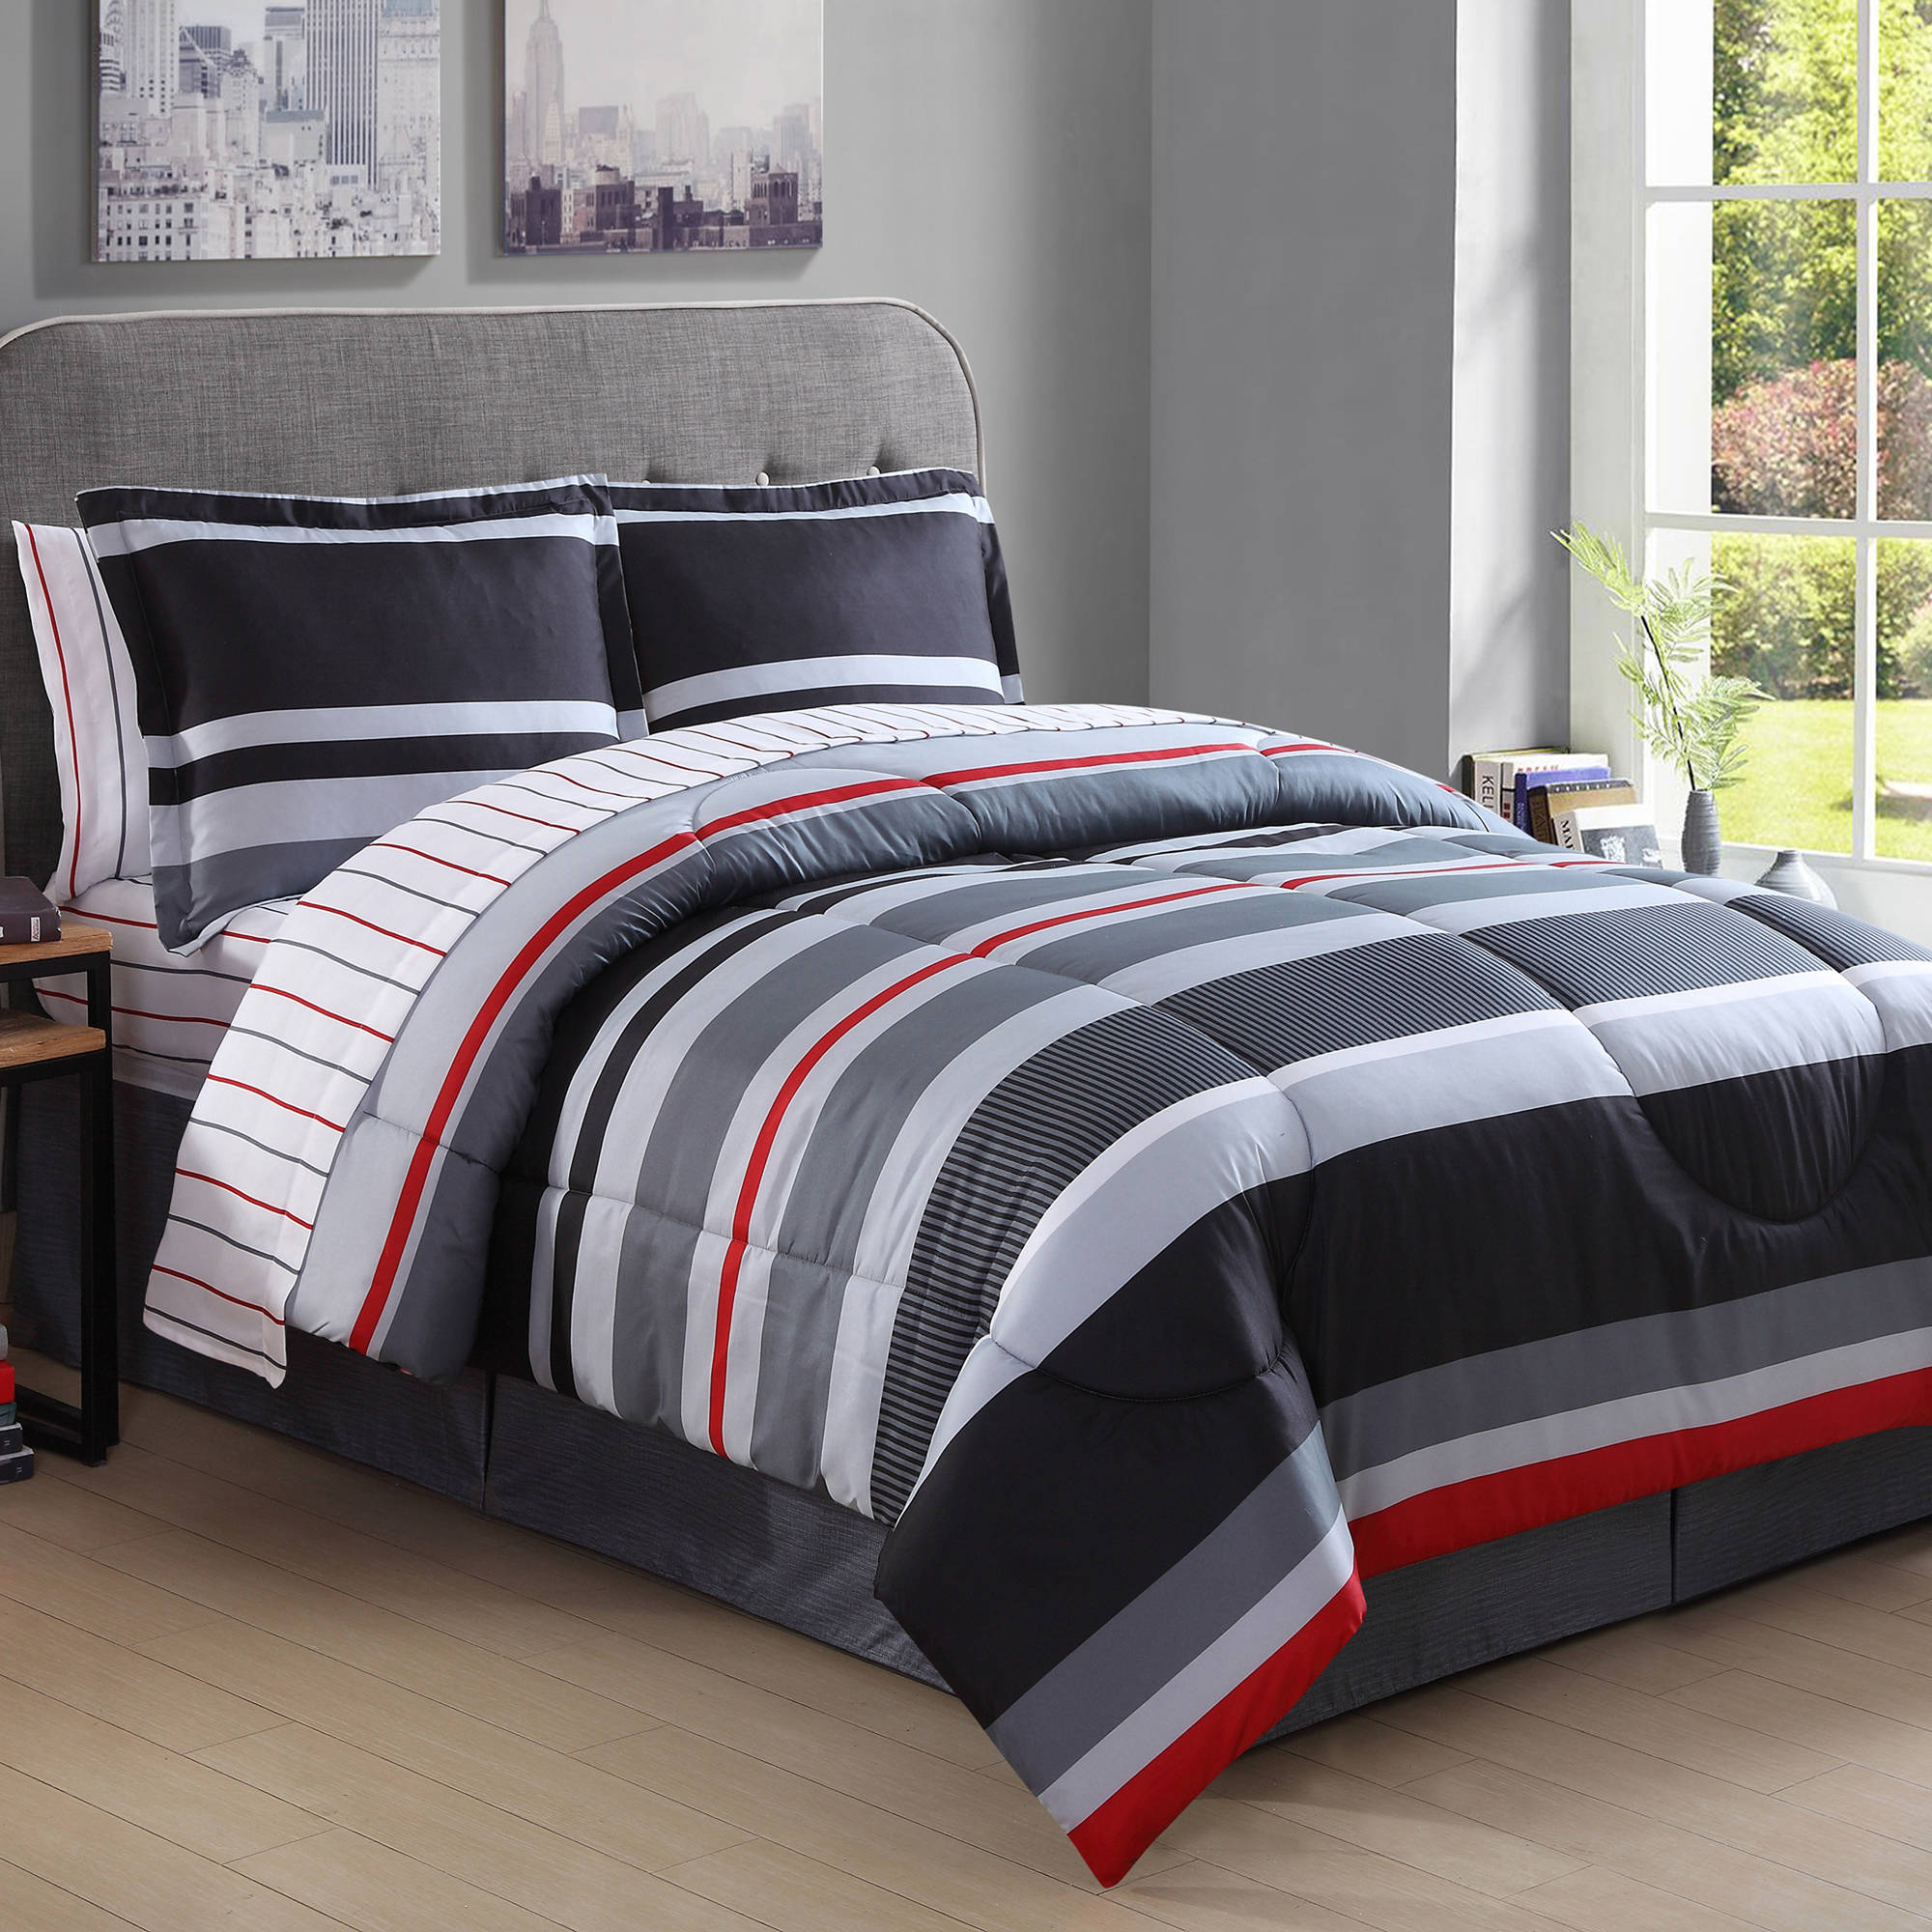 Arden Stripe Bed in a Bag Walmart